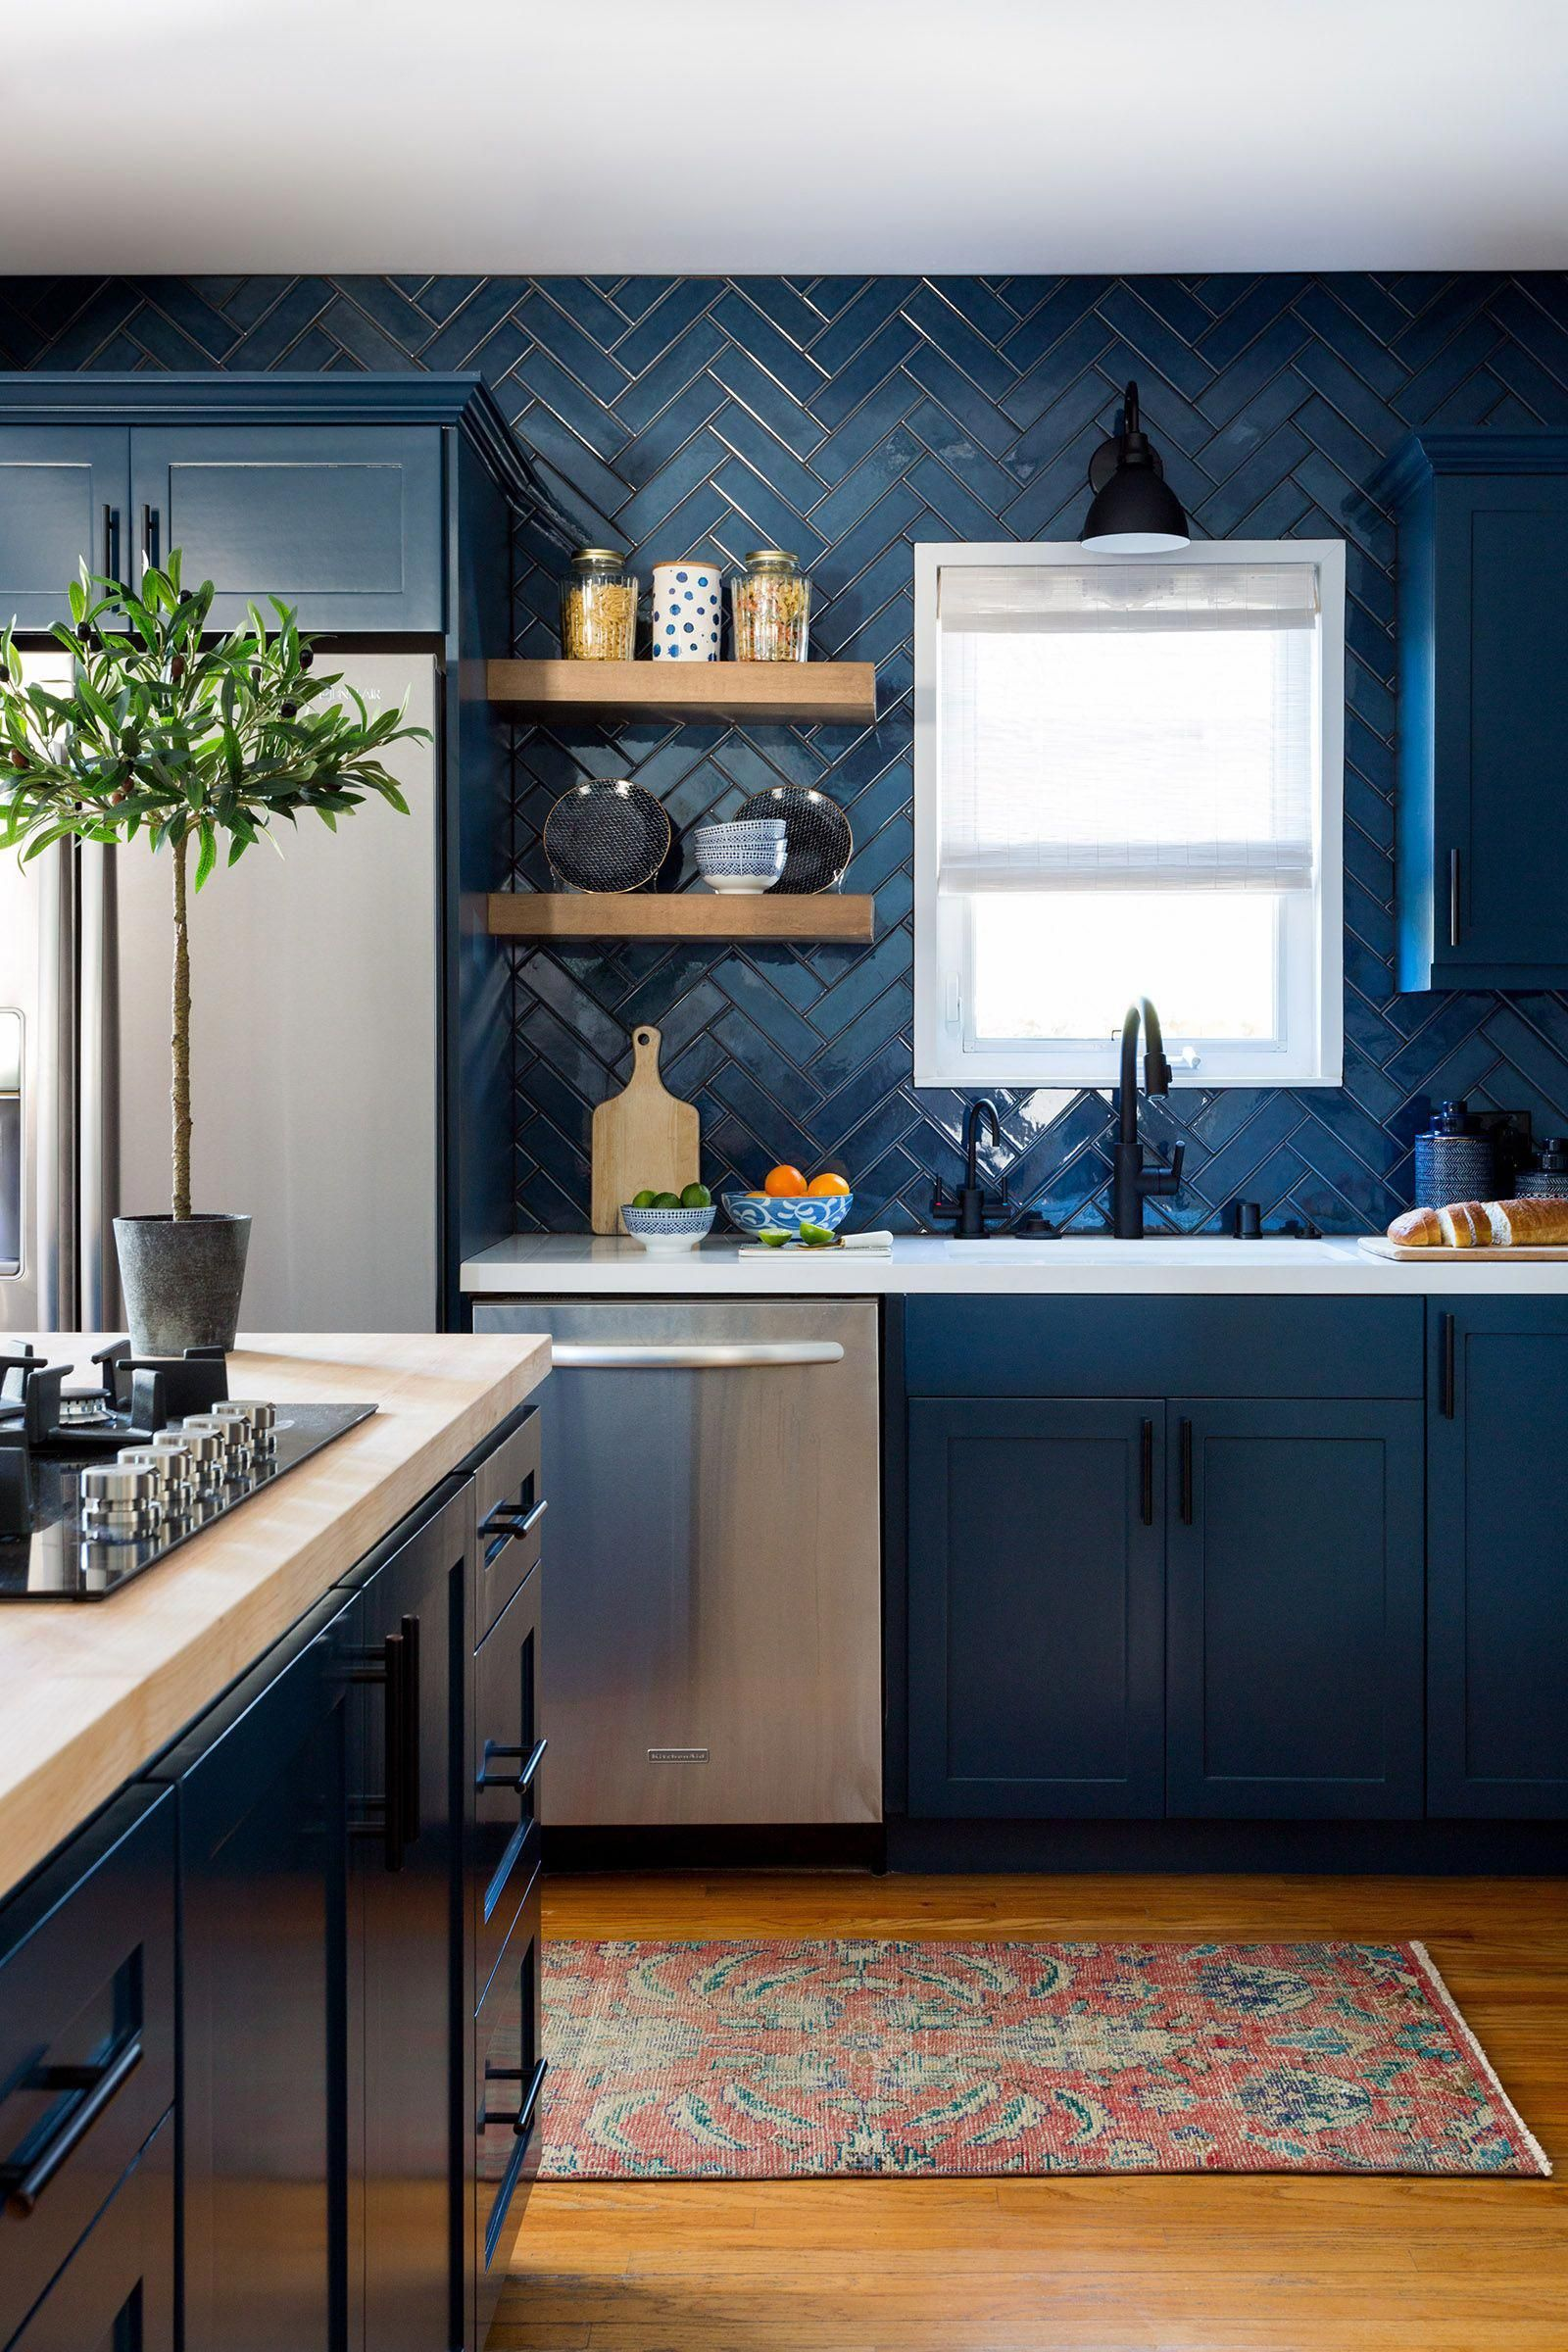 Dark blue kitchen cabinets with blue tile backsplash  | Jenn Feldman Designs #topkitchendesigns #darkkitchencabinets